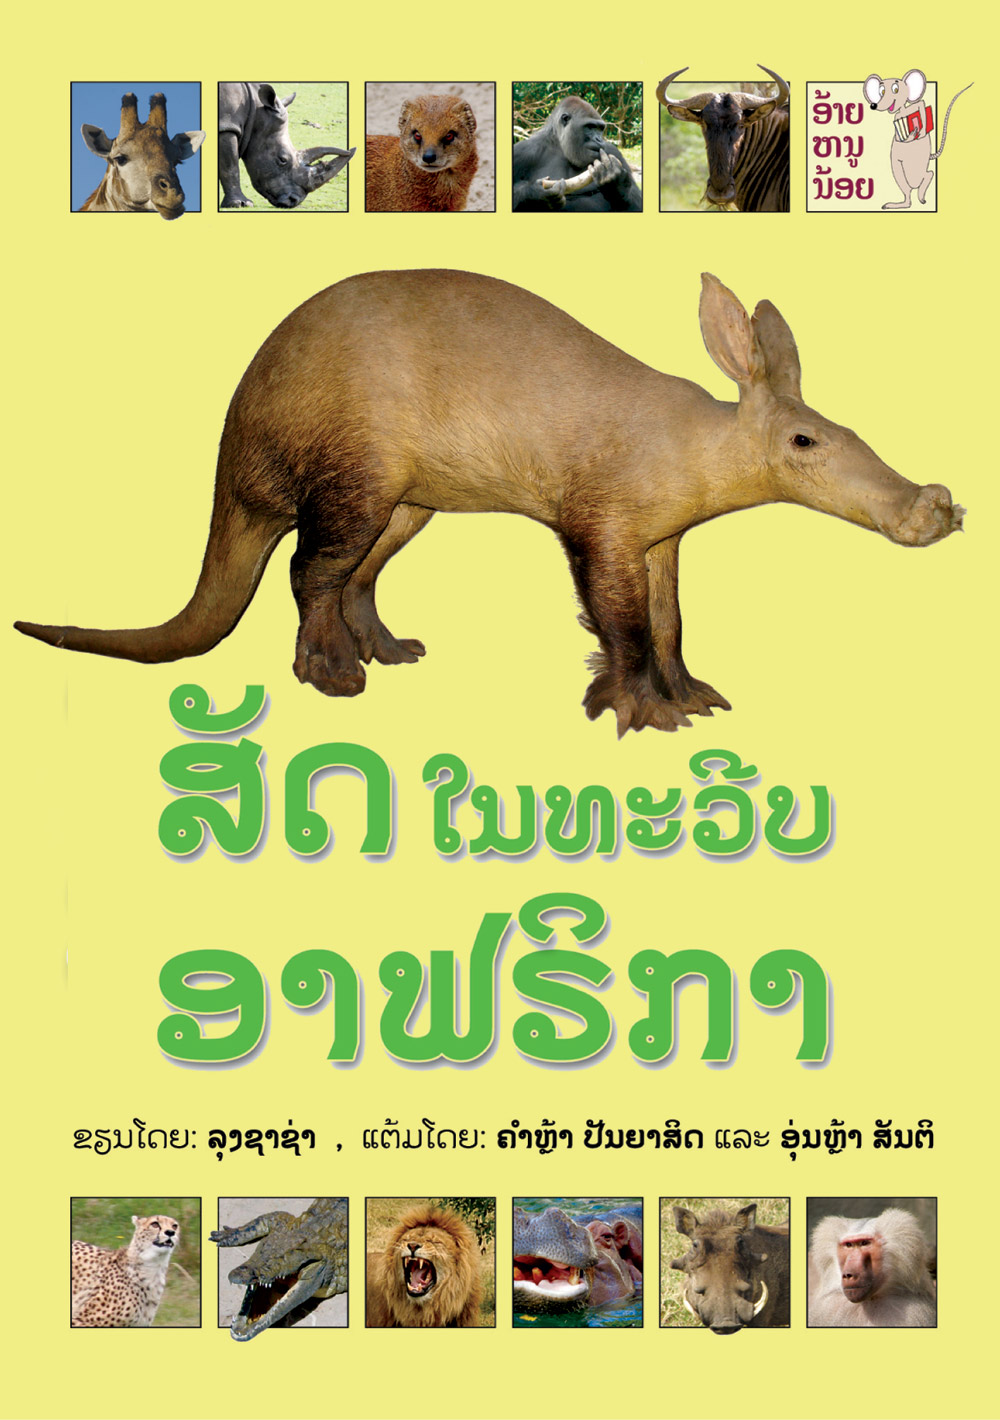 Animals of Africa large book cover, published in Lao language